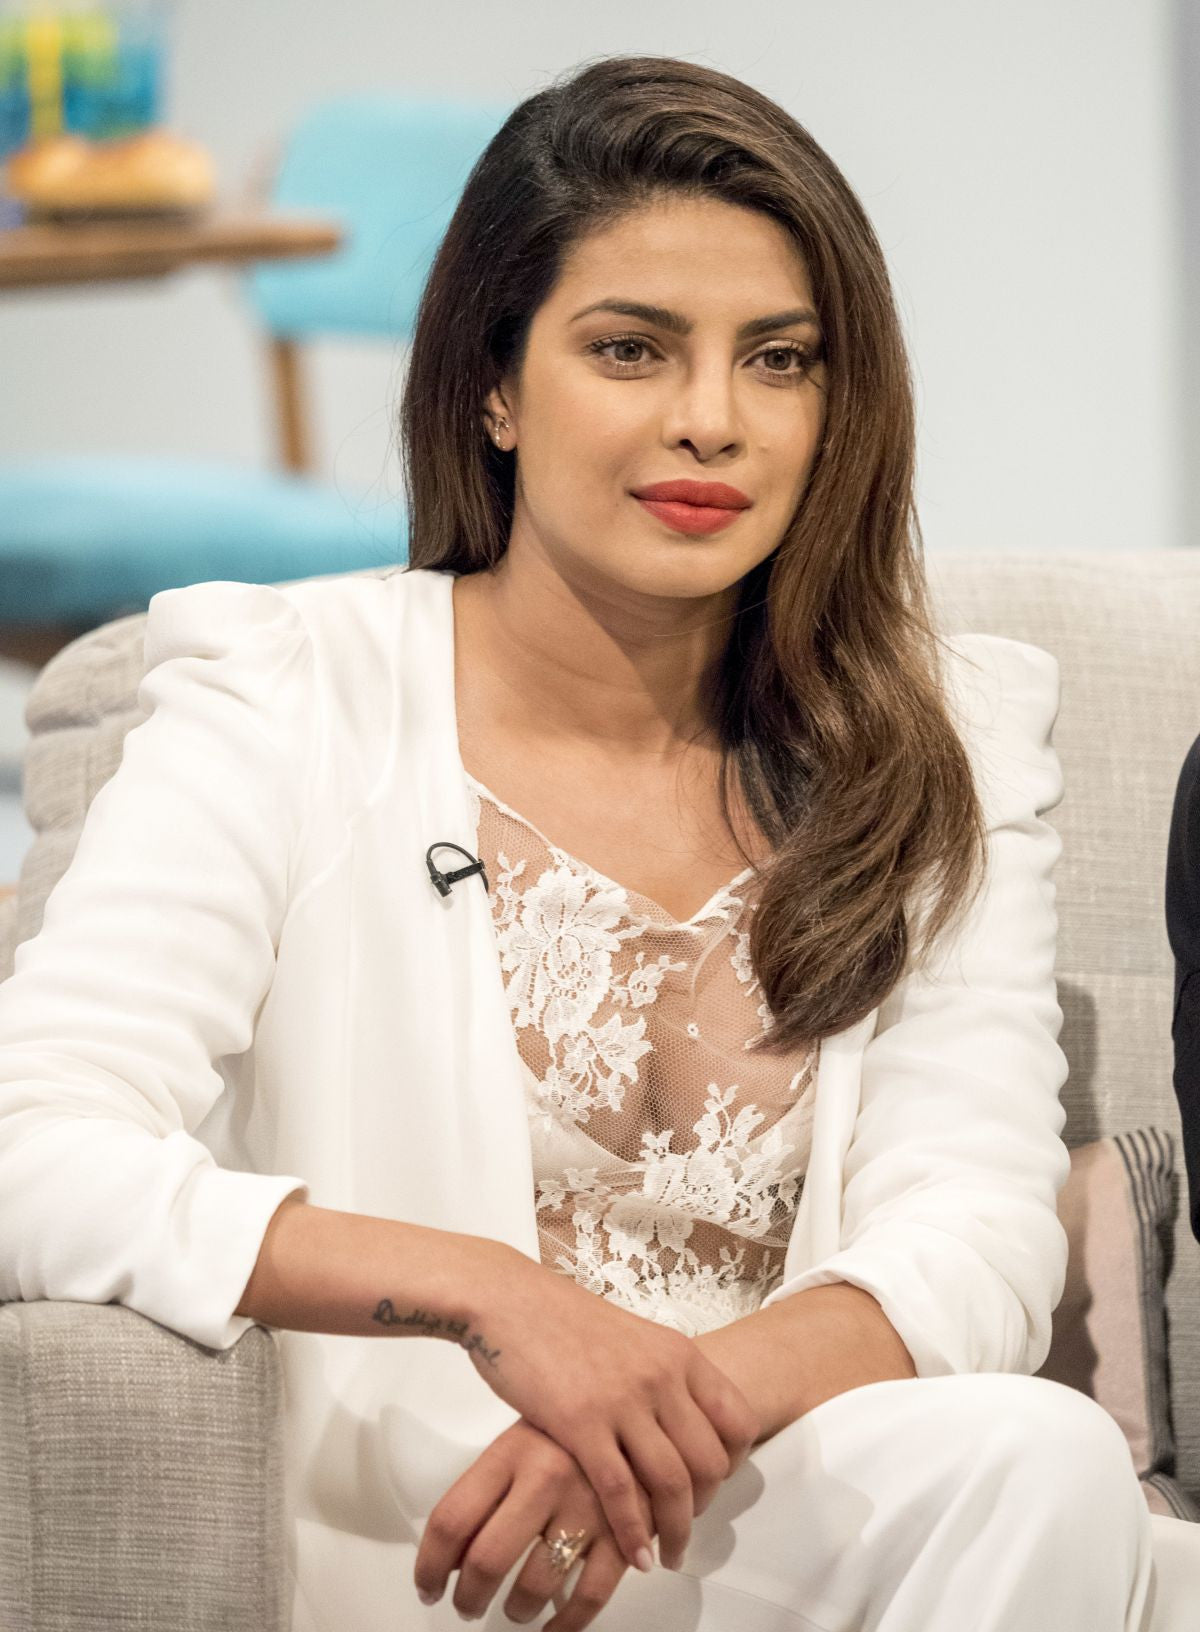 PRIYANKA CHOPRA Arrives at ITV Studio in London fro her Baywatch movie Promotion